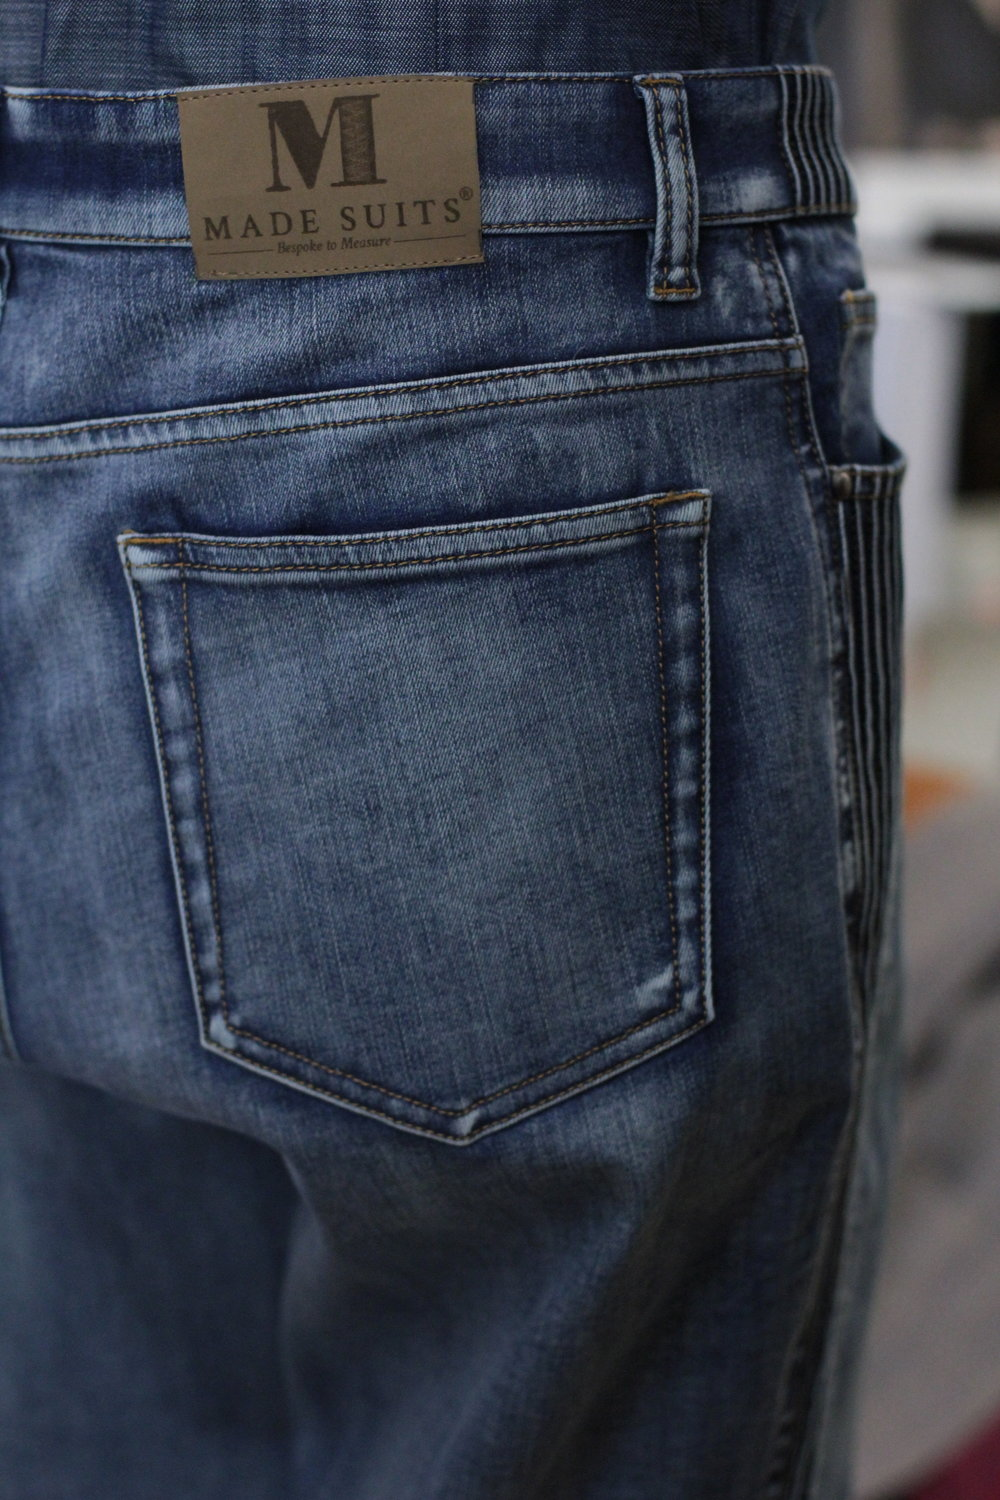 Made Suits   Made Denim   Tailor Made Suits Singapore   Denim jeans Singapore   Bespoke HST Denim Jeans   Denim Jeans Bespoke Denim Jeans